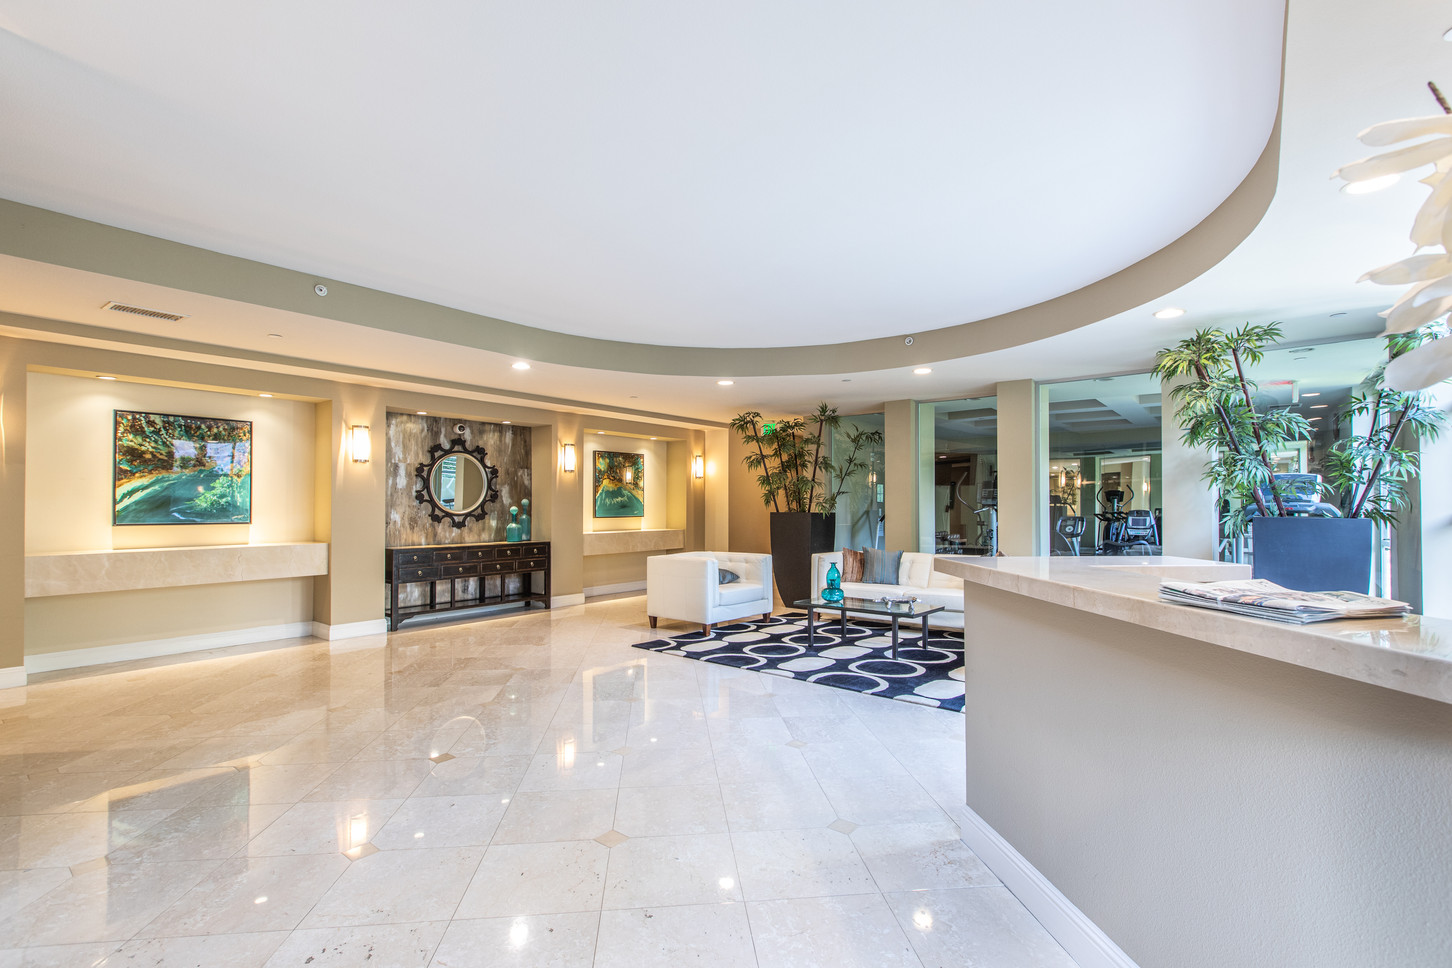 1521 Greenfield Ave. #101 - HsH Prod.-14